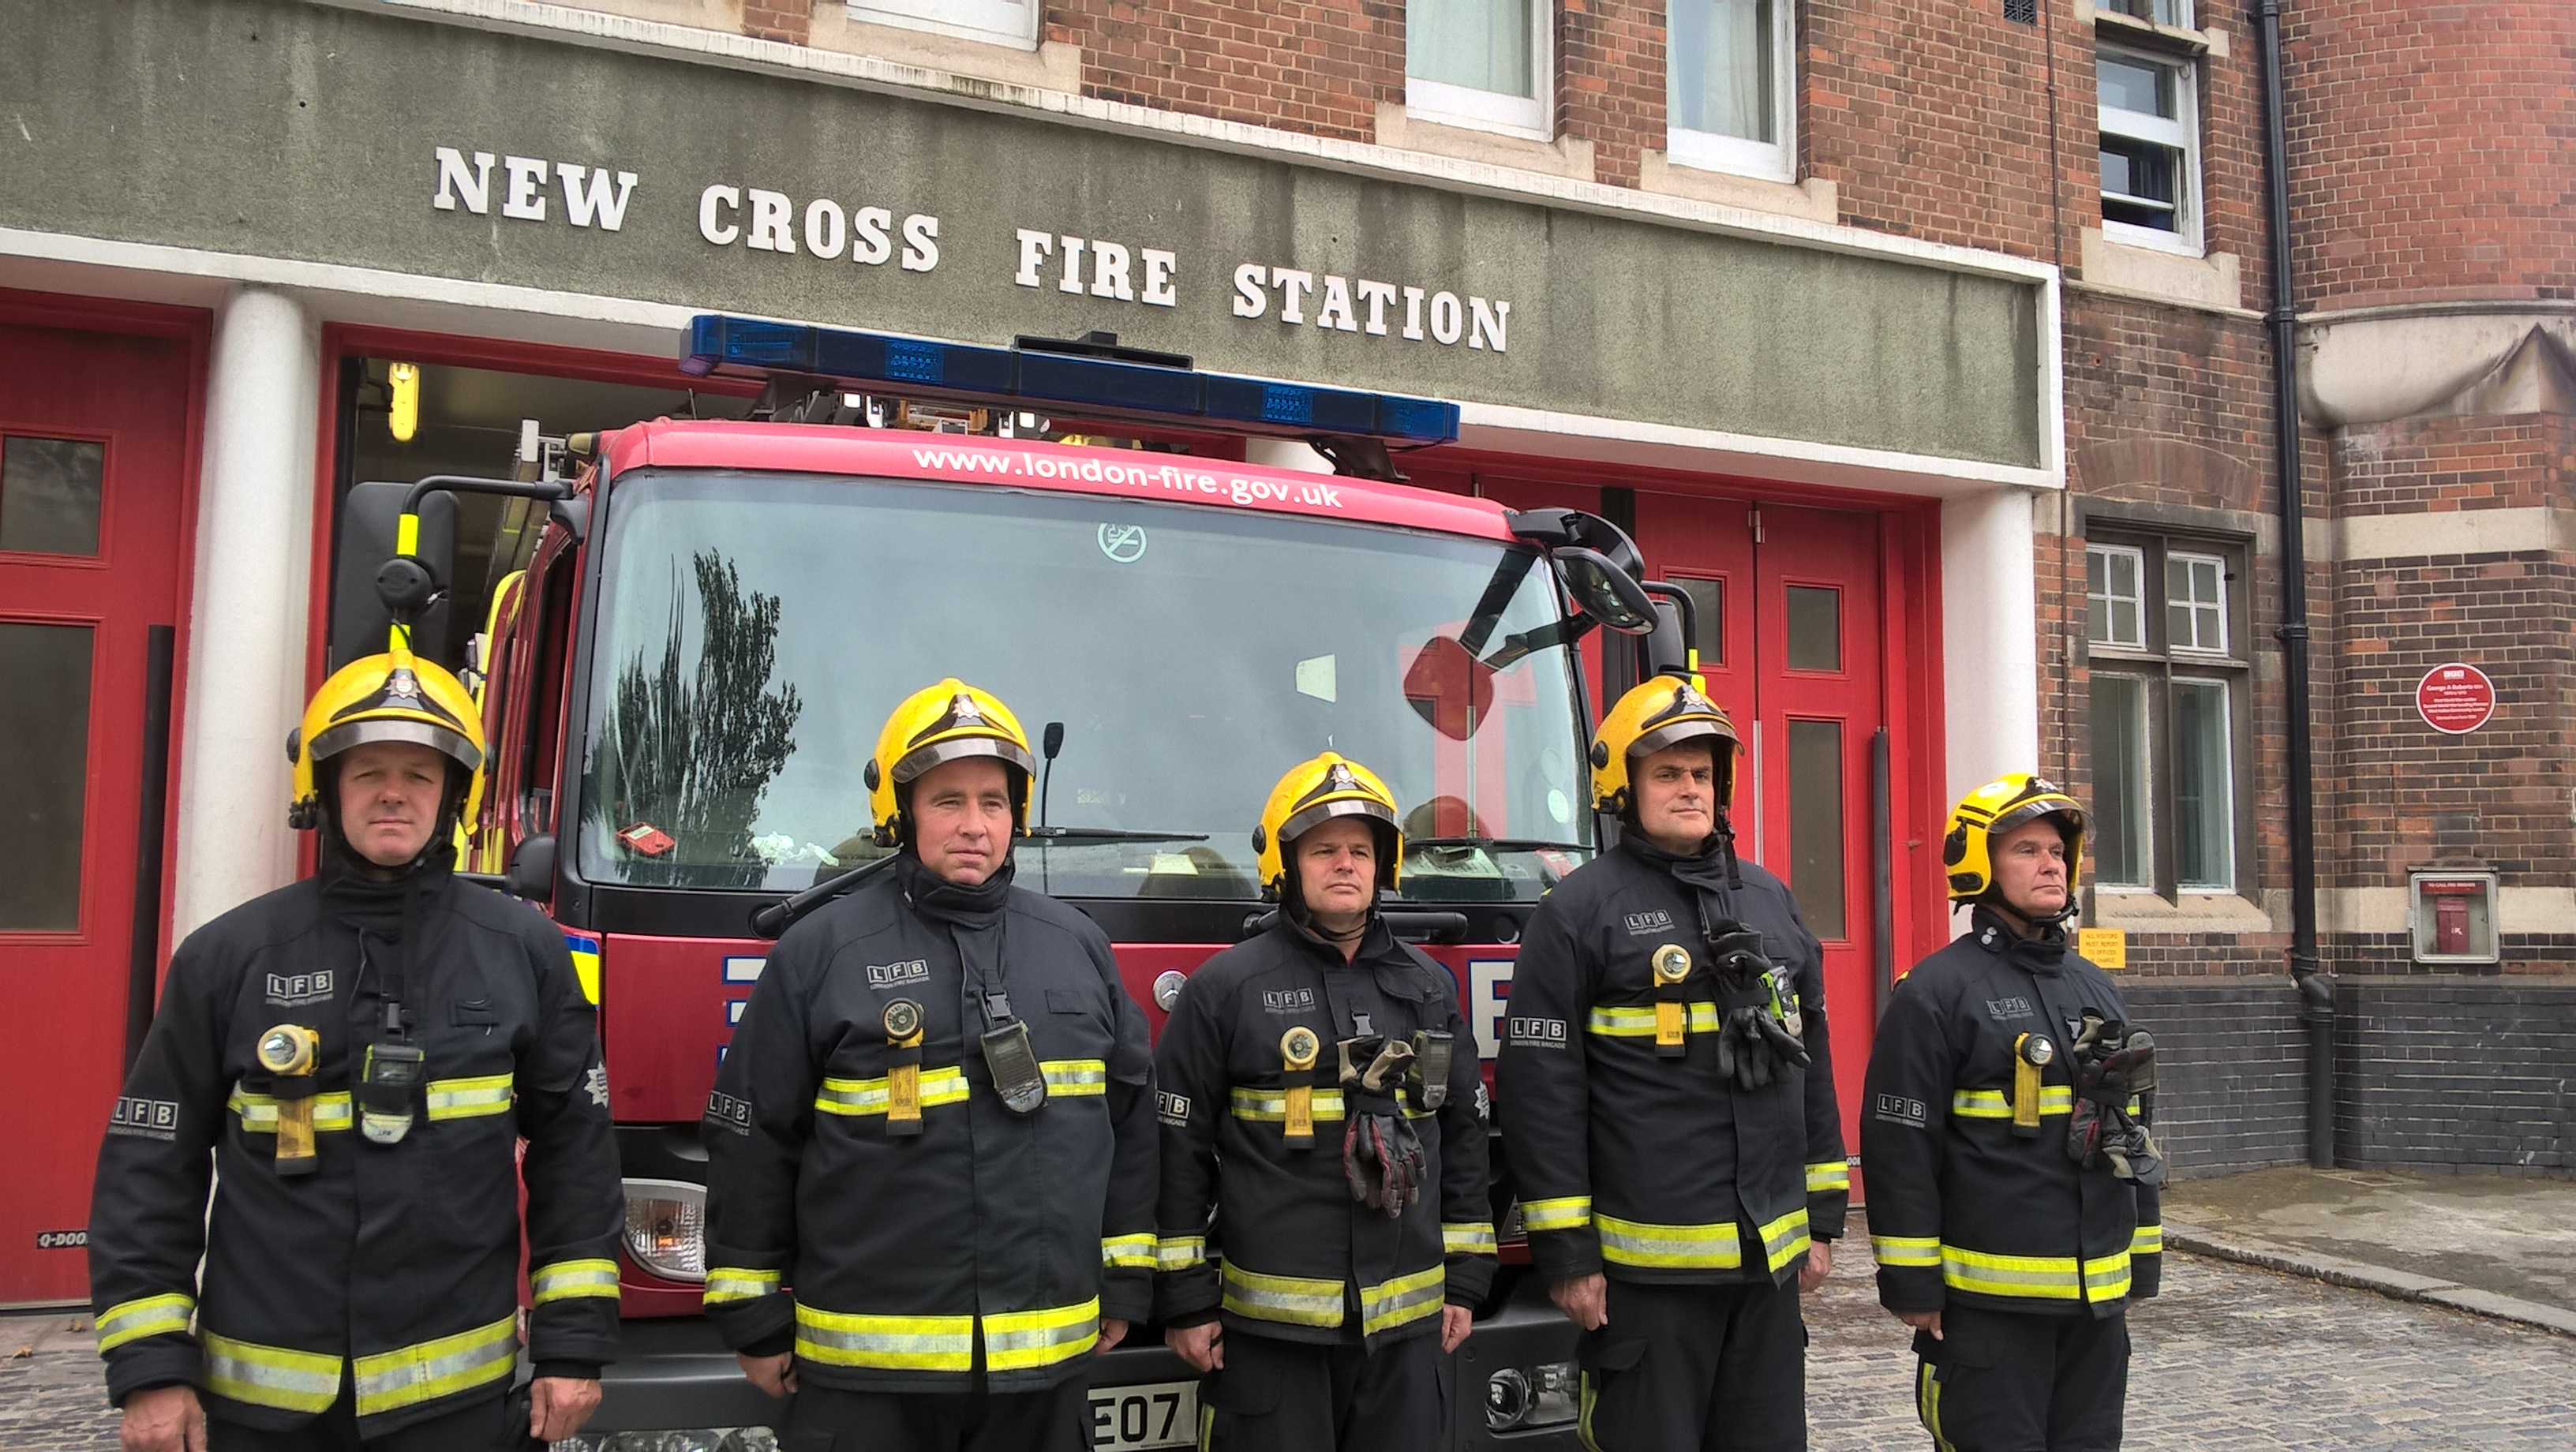 Firefighters outside New Cross fire station